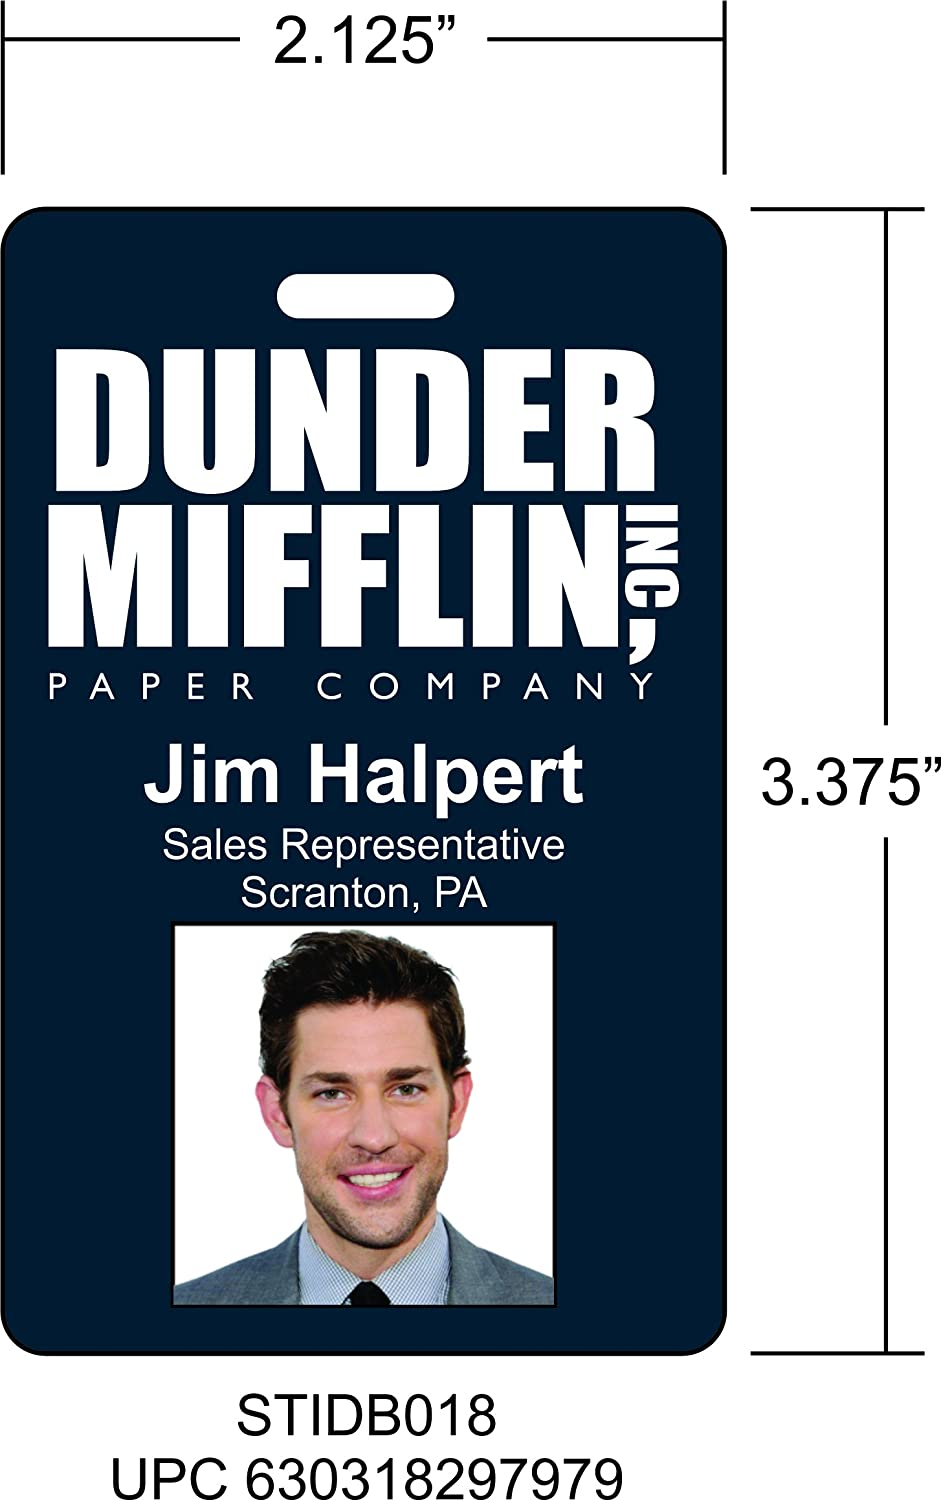 photo regarding Dwight Schrute Id Badge Printable named : Jim Halpert The Business office Novelty Identification Badge Motion picture